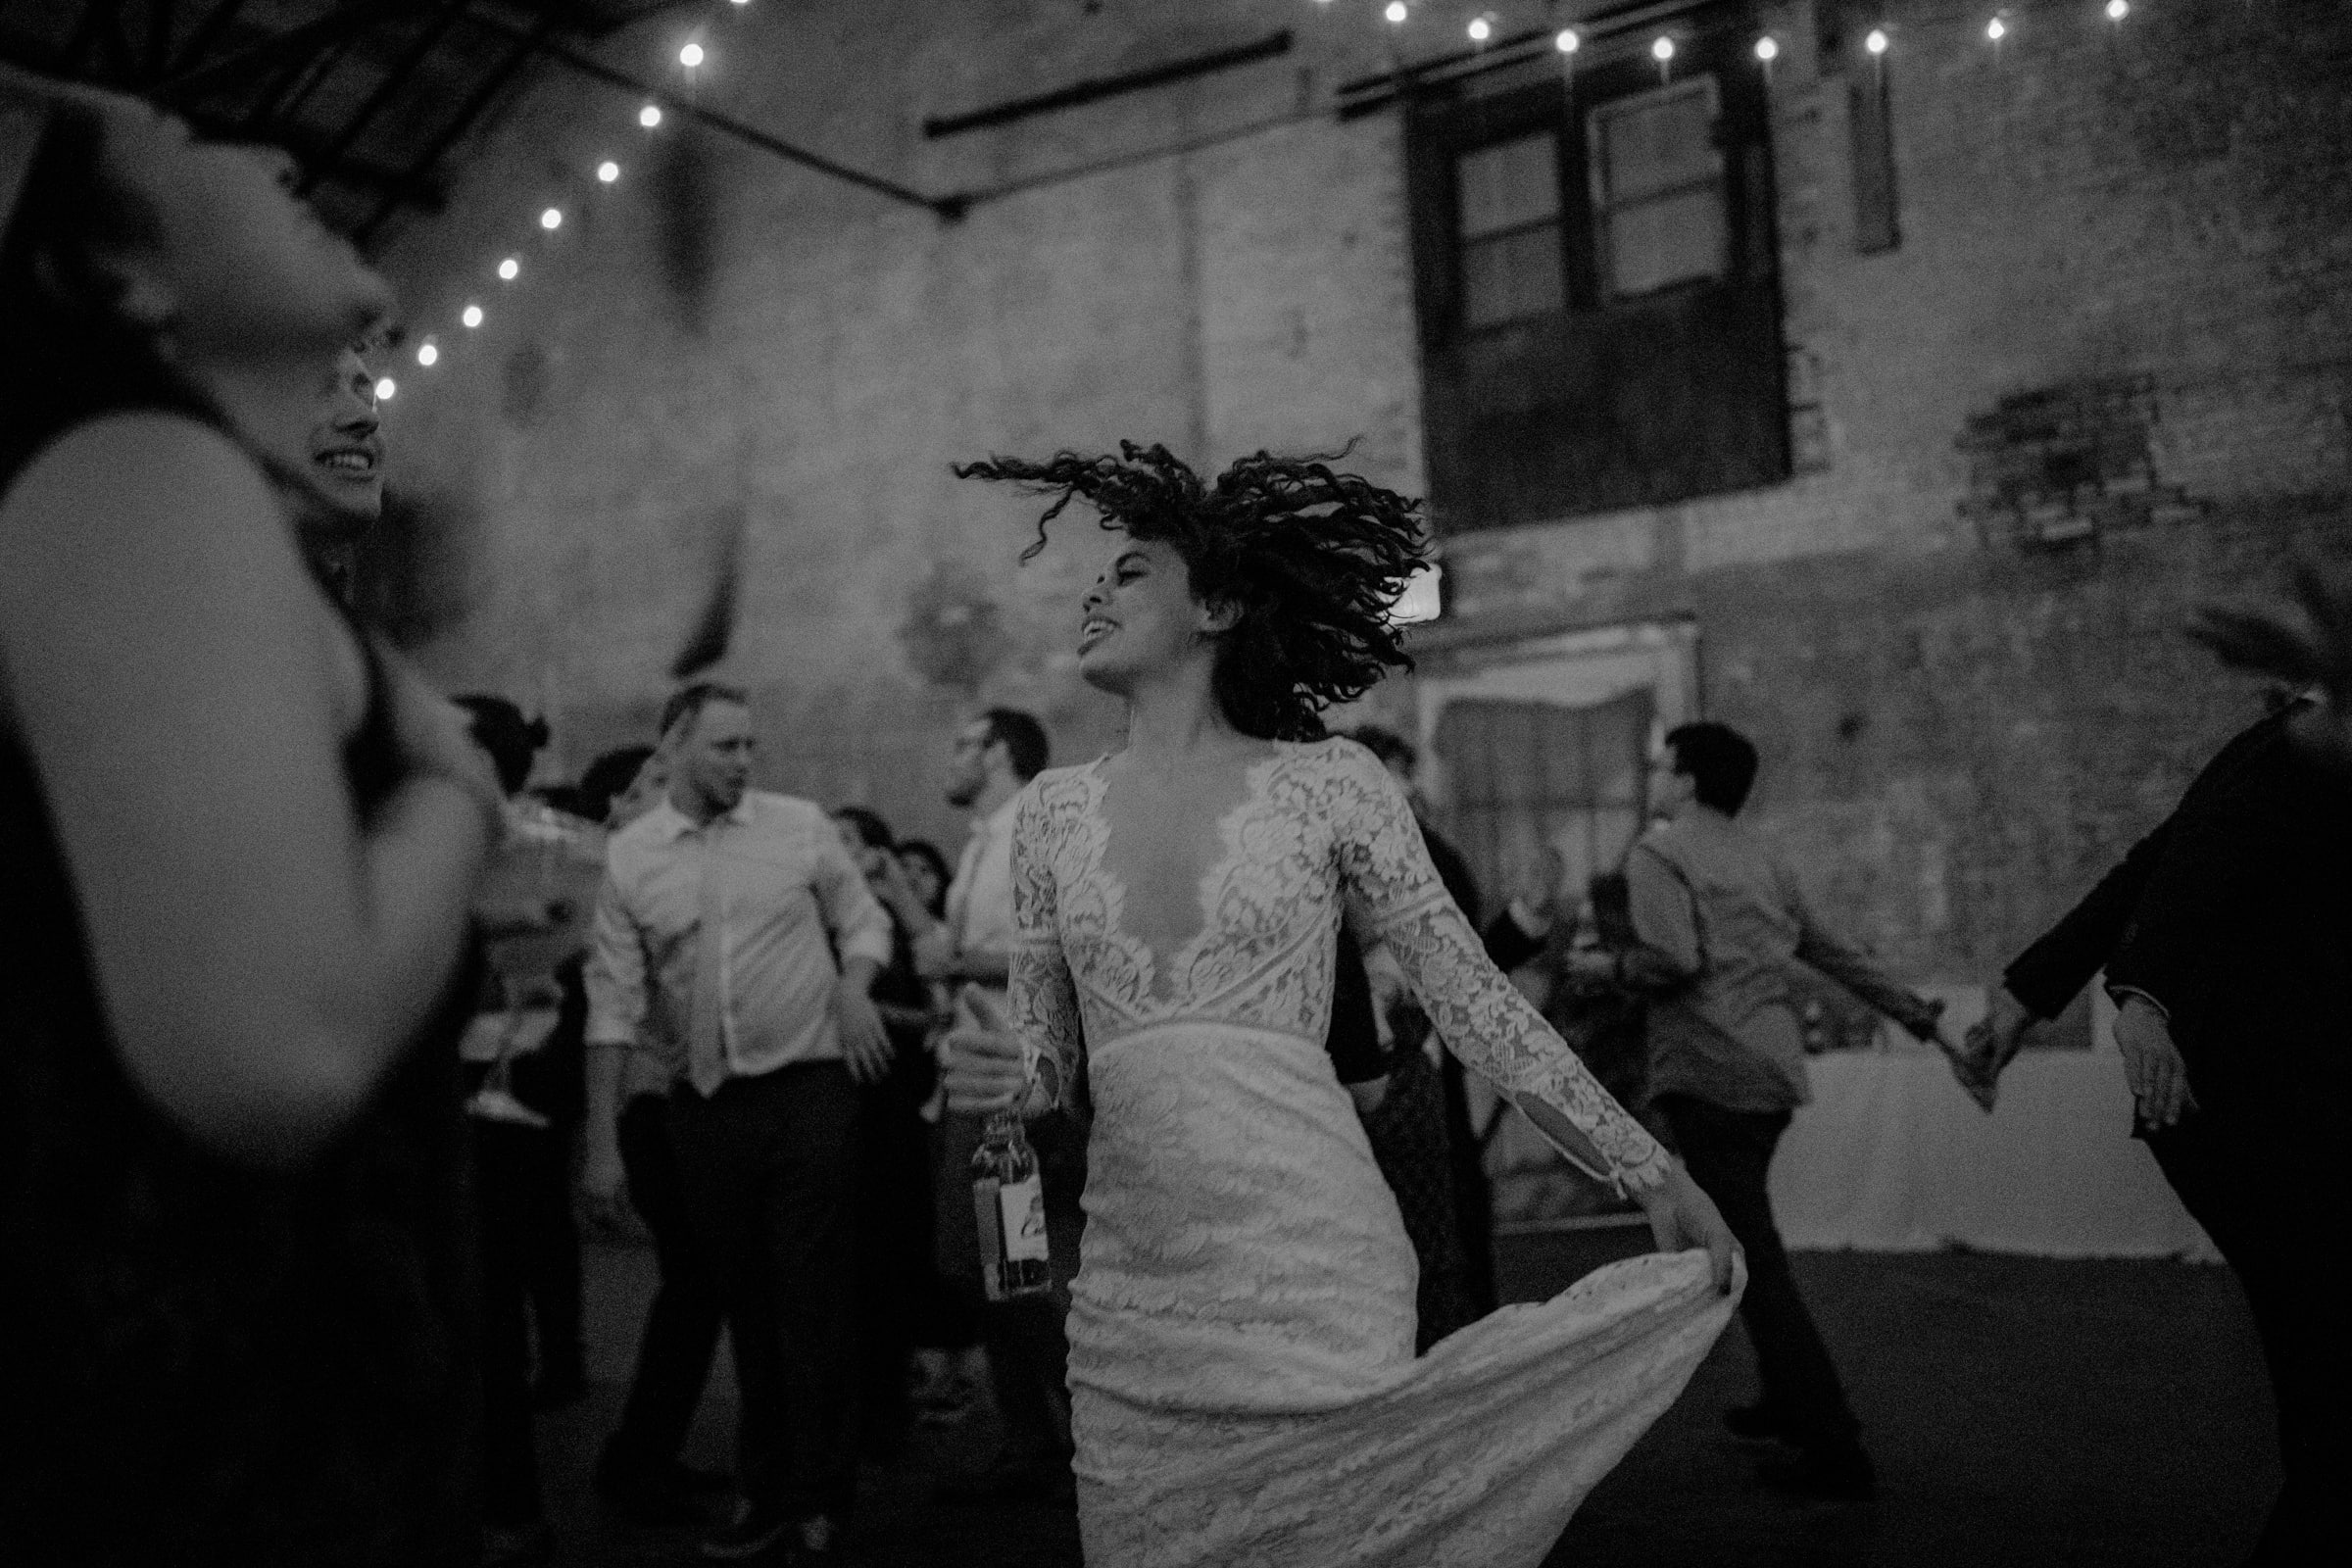 The bride is dancing with other wedding guests.